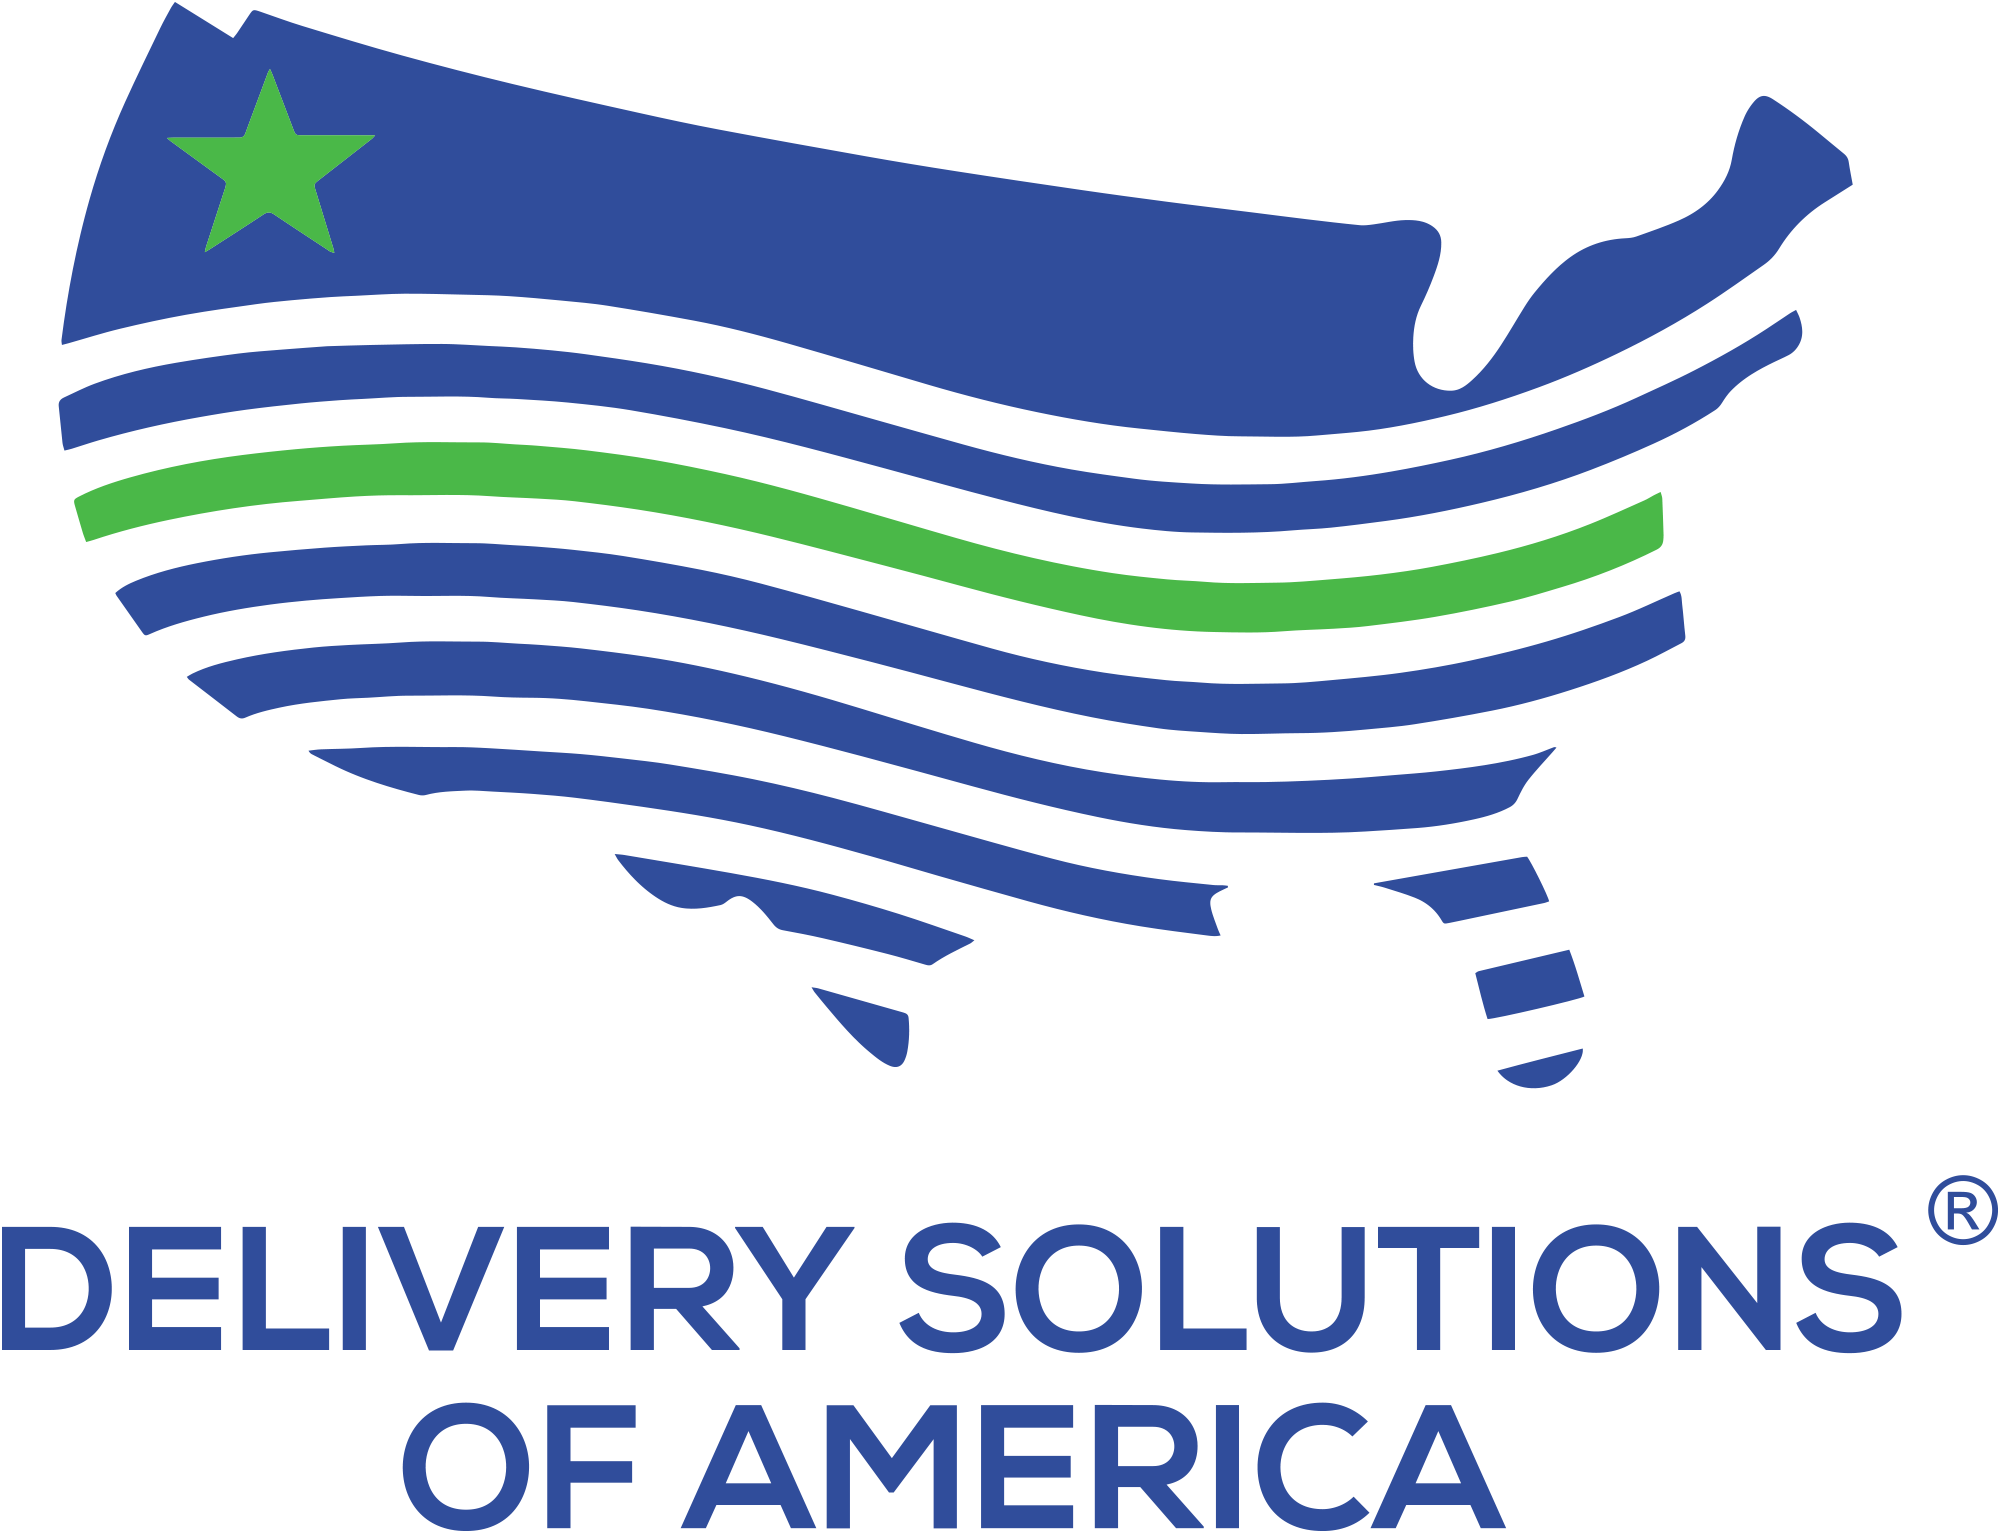 Delivery Solutions of America